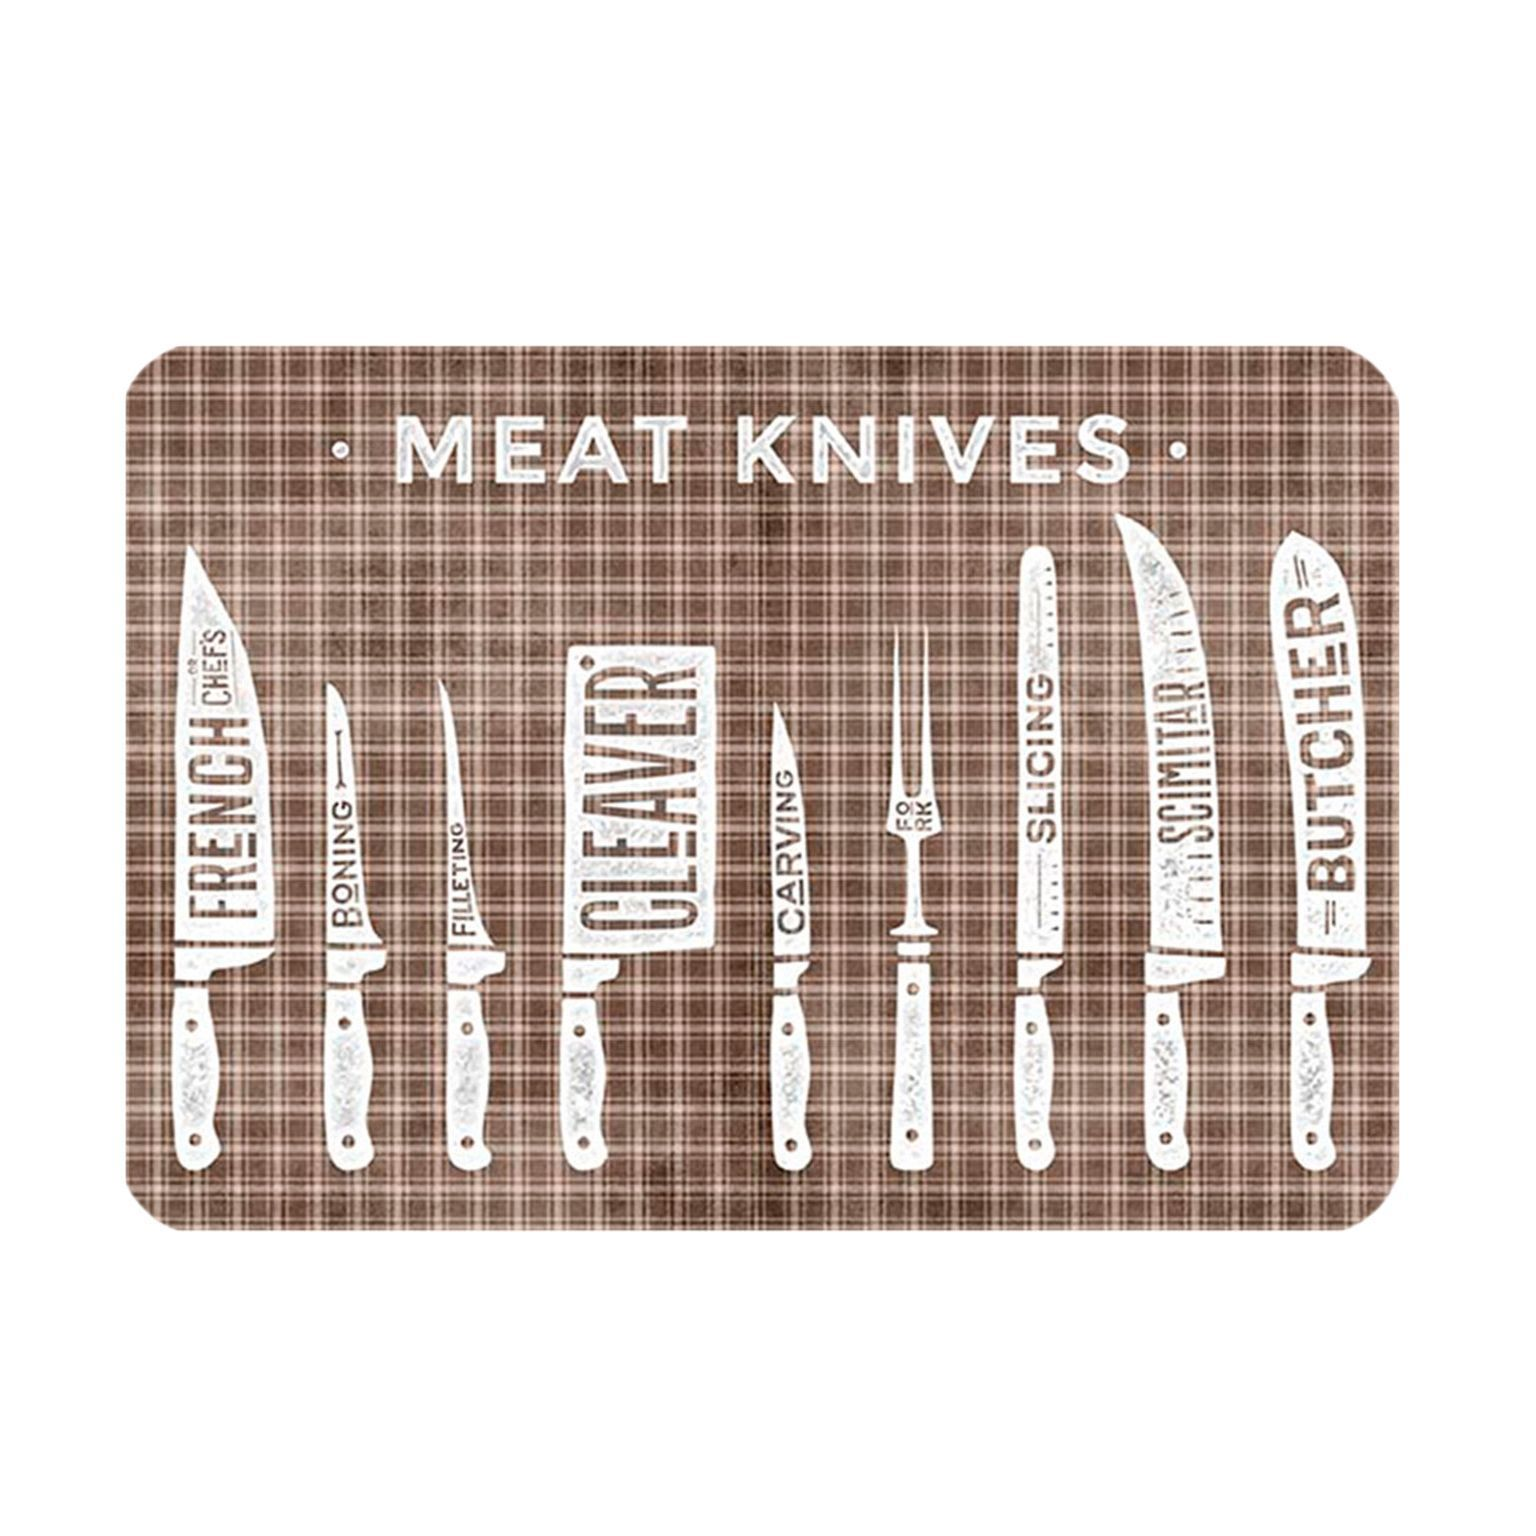 Tapetinho Antiderrapante Meat Knives